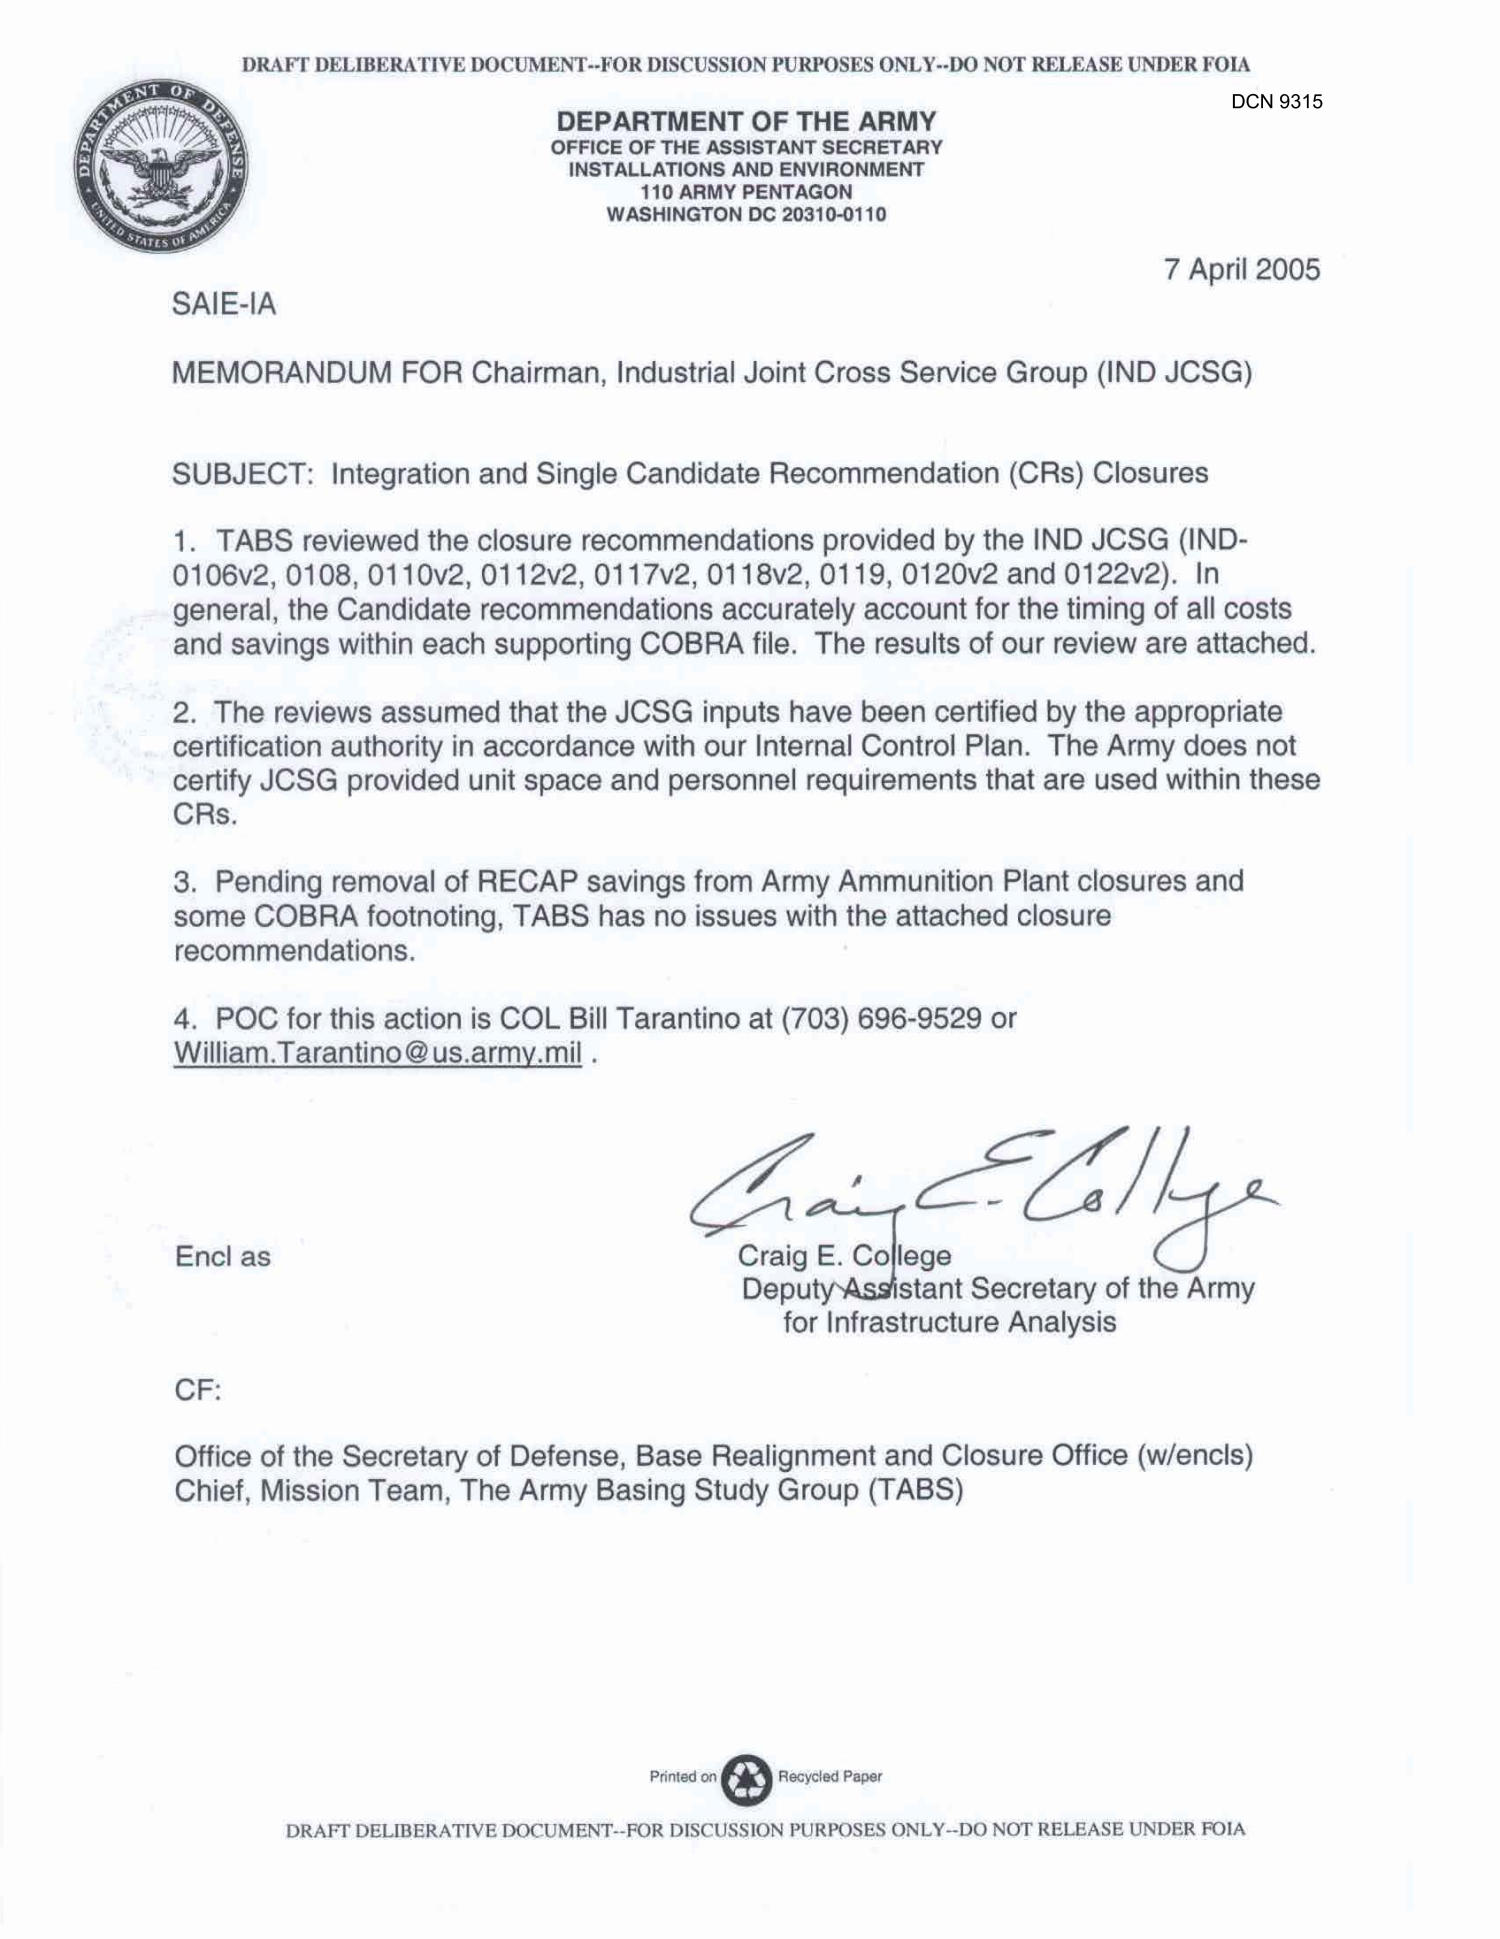 us army memorandum for record template - department of the army memo dated 7 april 2005 for